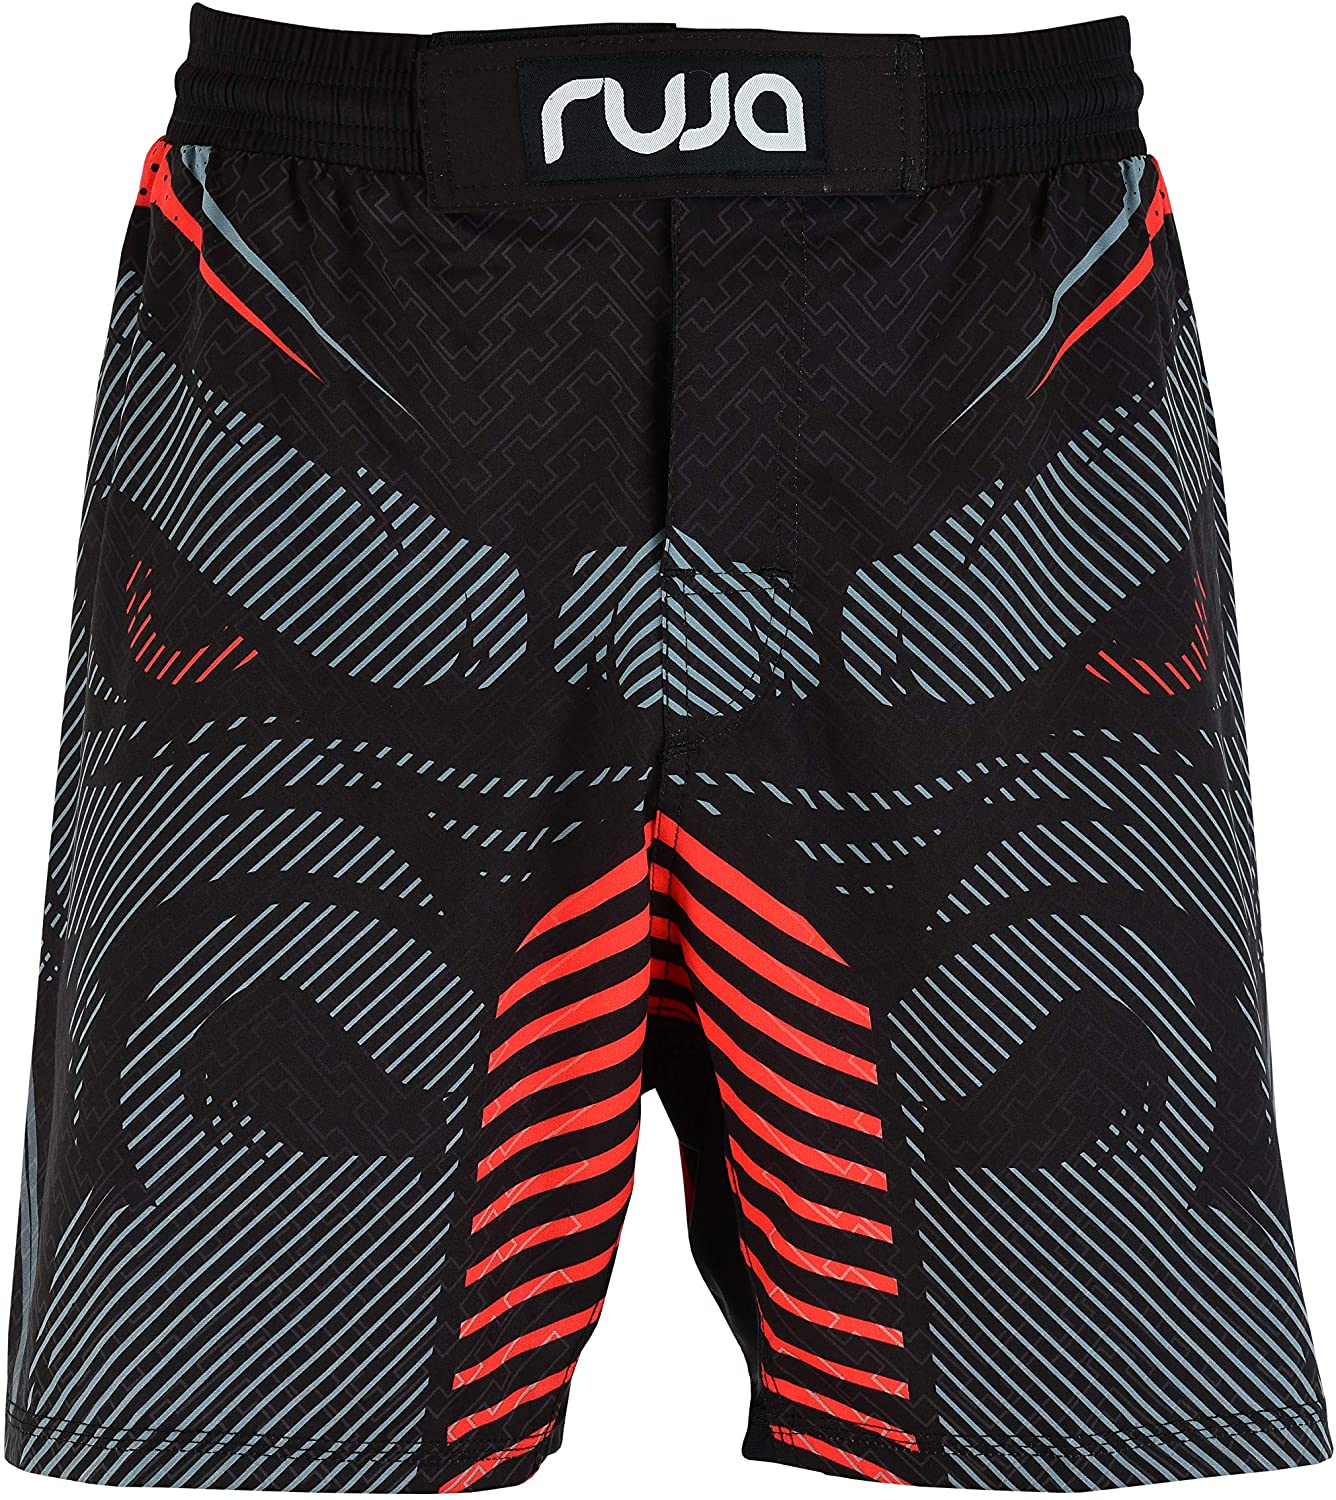 Ruja Men's Pro MMA Fight Fitness Training Gorilla Shorts